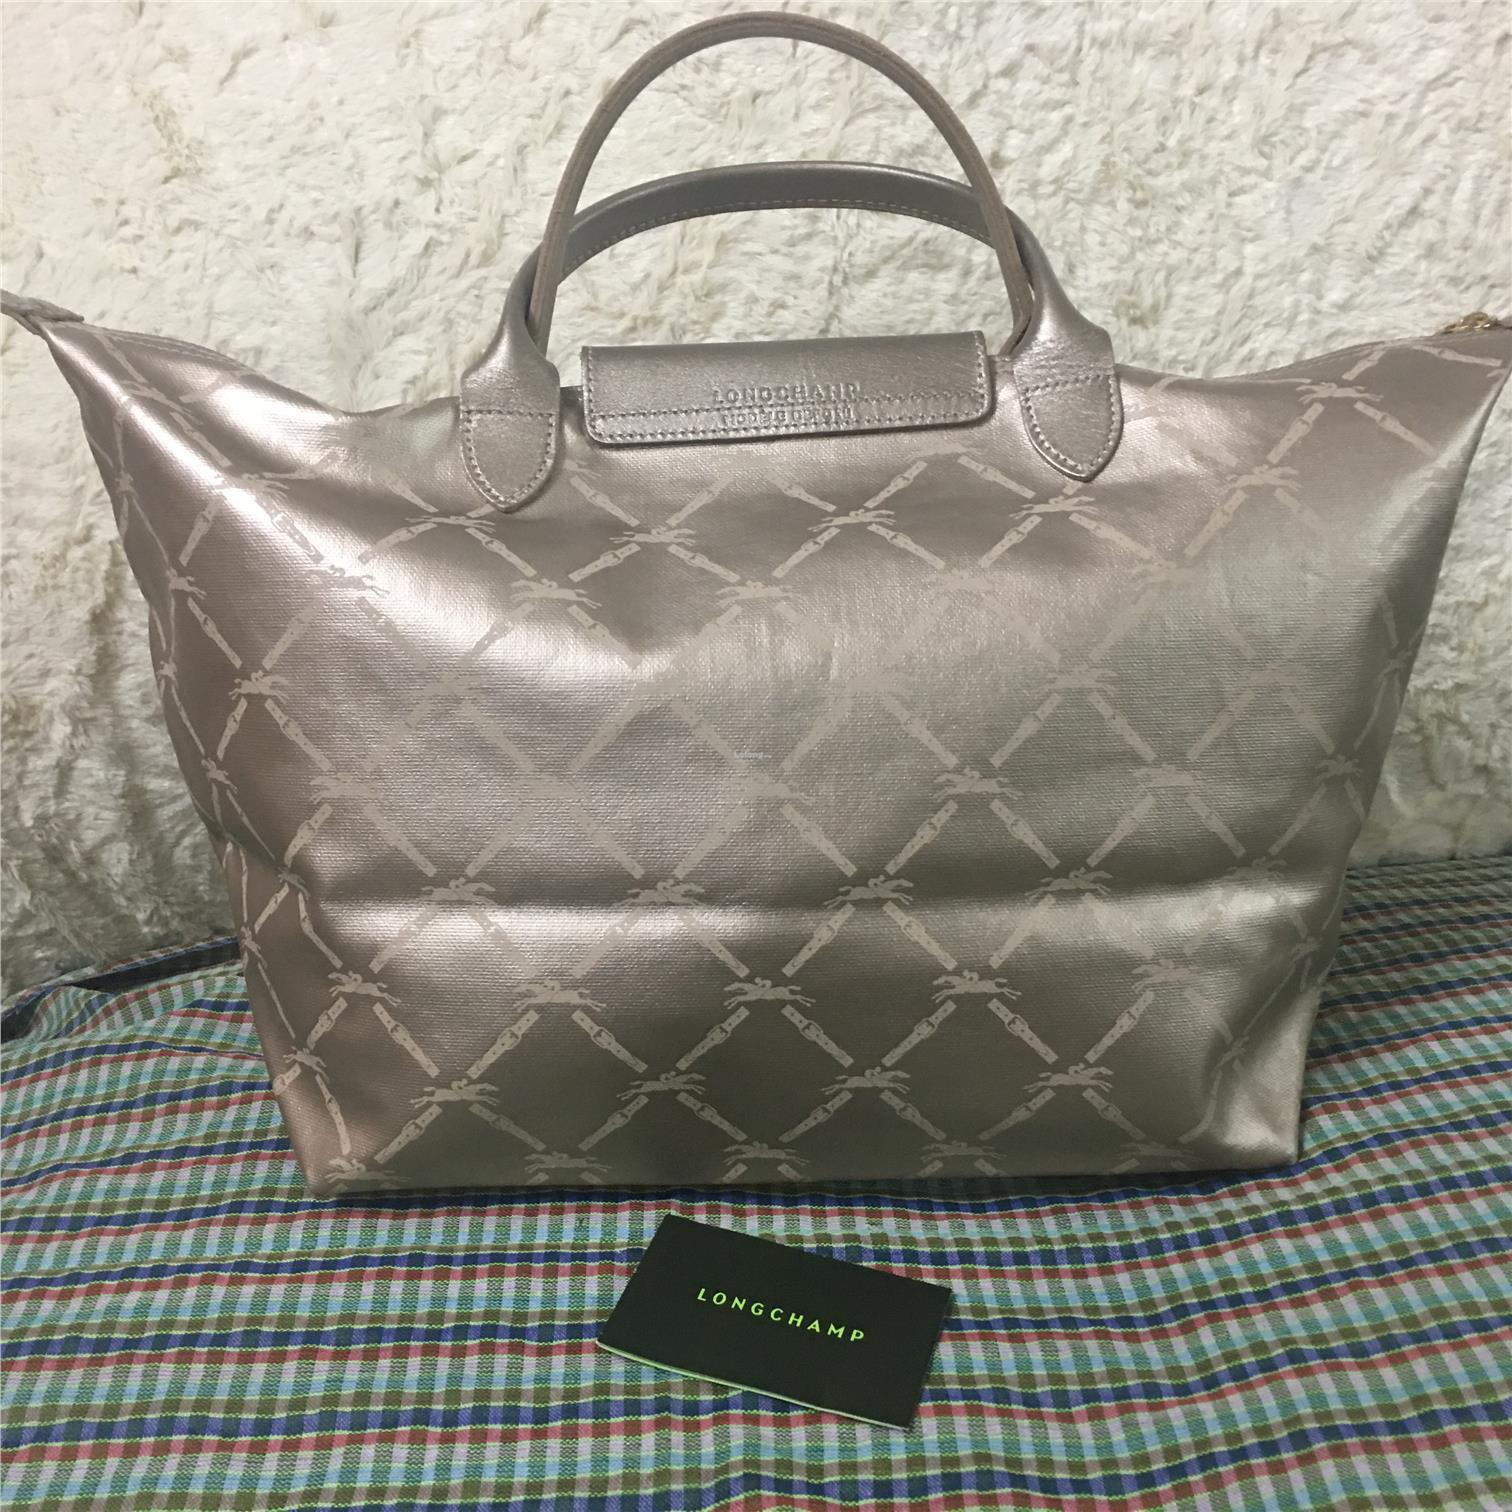 Pre-loved - Longchamp 'Le Pliage' Large Printed Rose Gold Tote